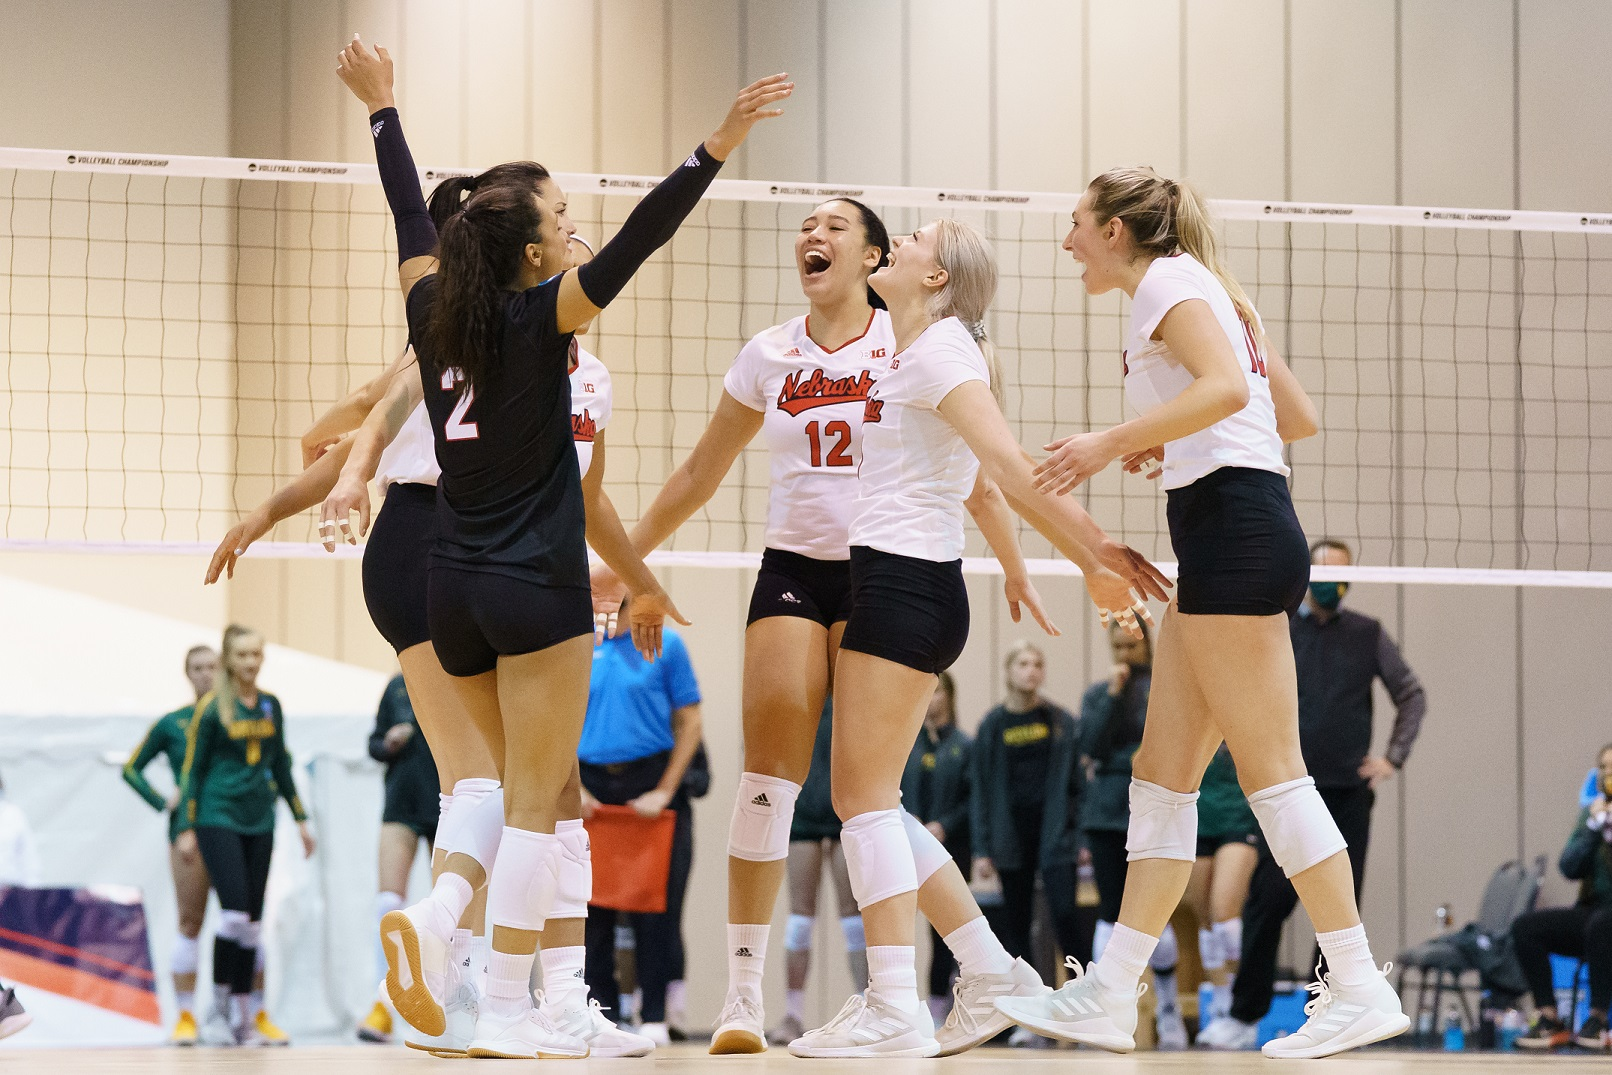 No. 5 Nebraska advances to Regional Finals after sweep of No. 12 Baylor